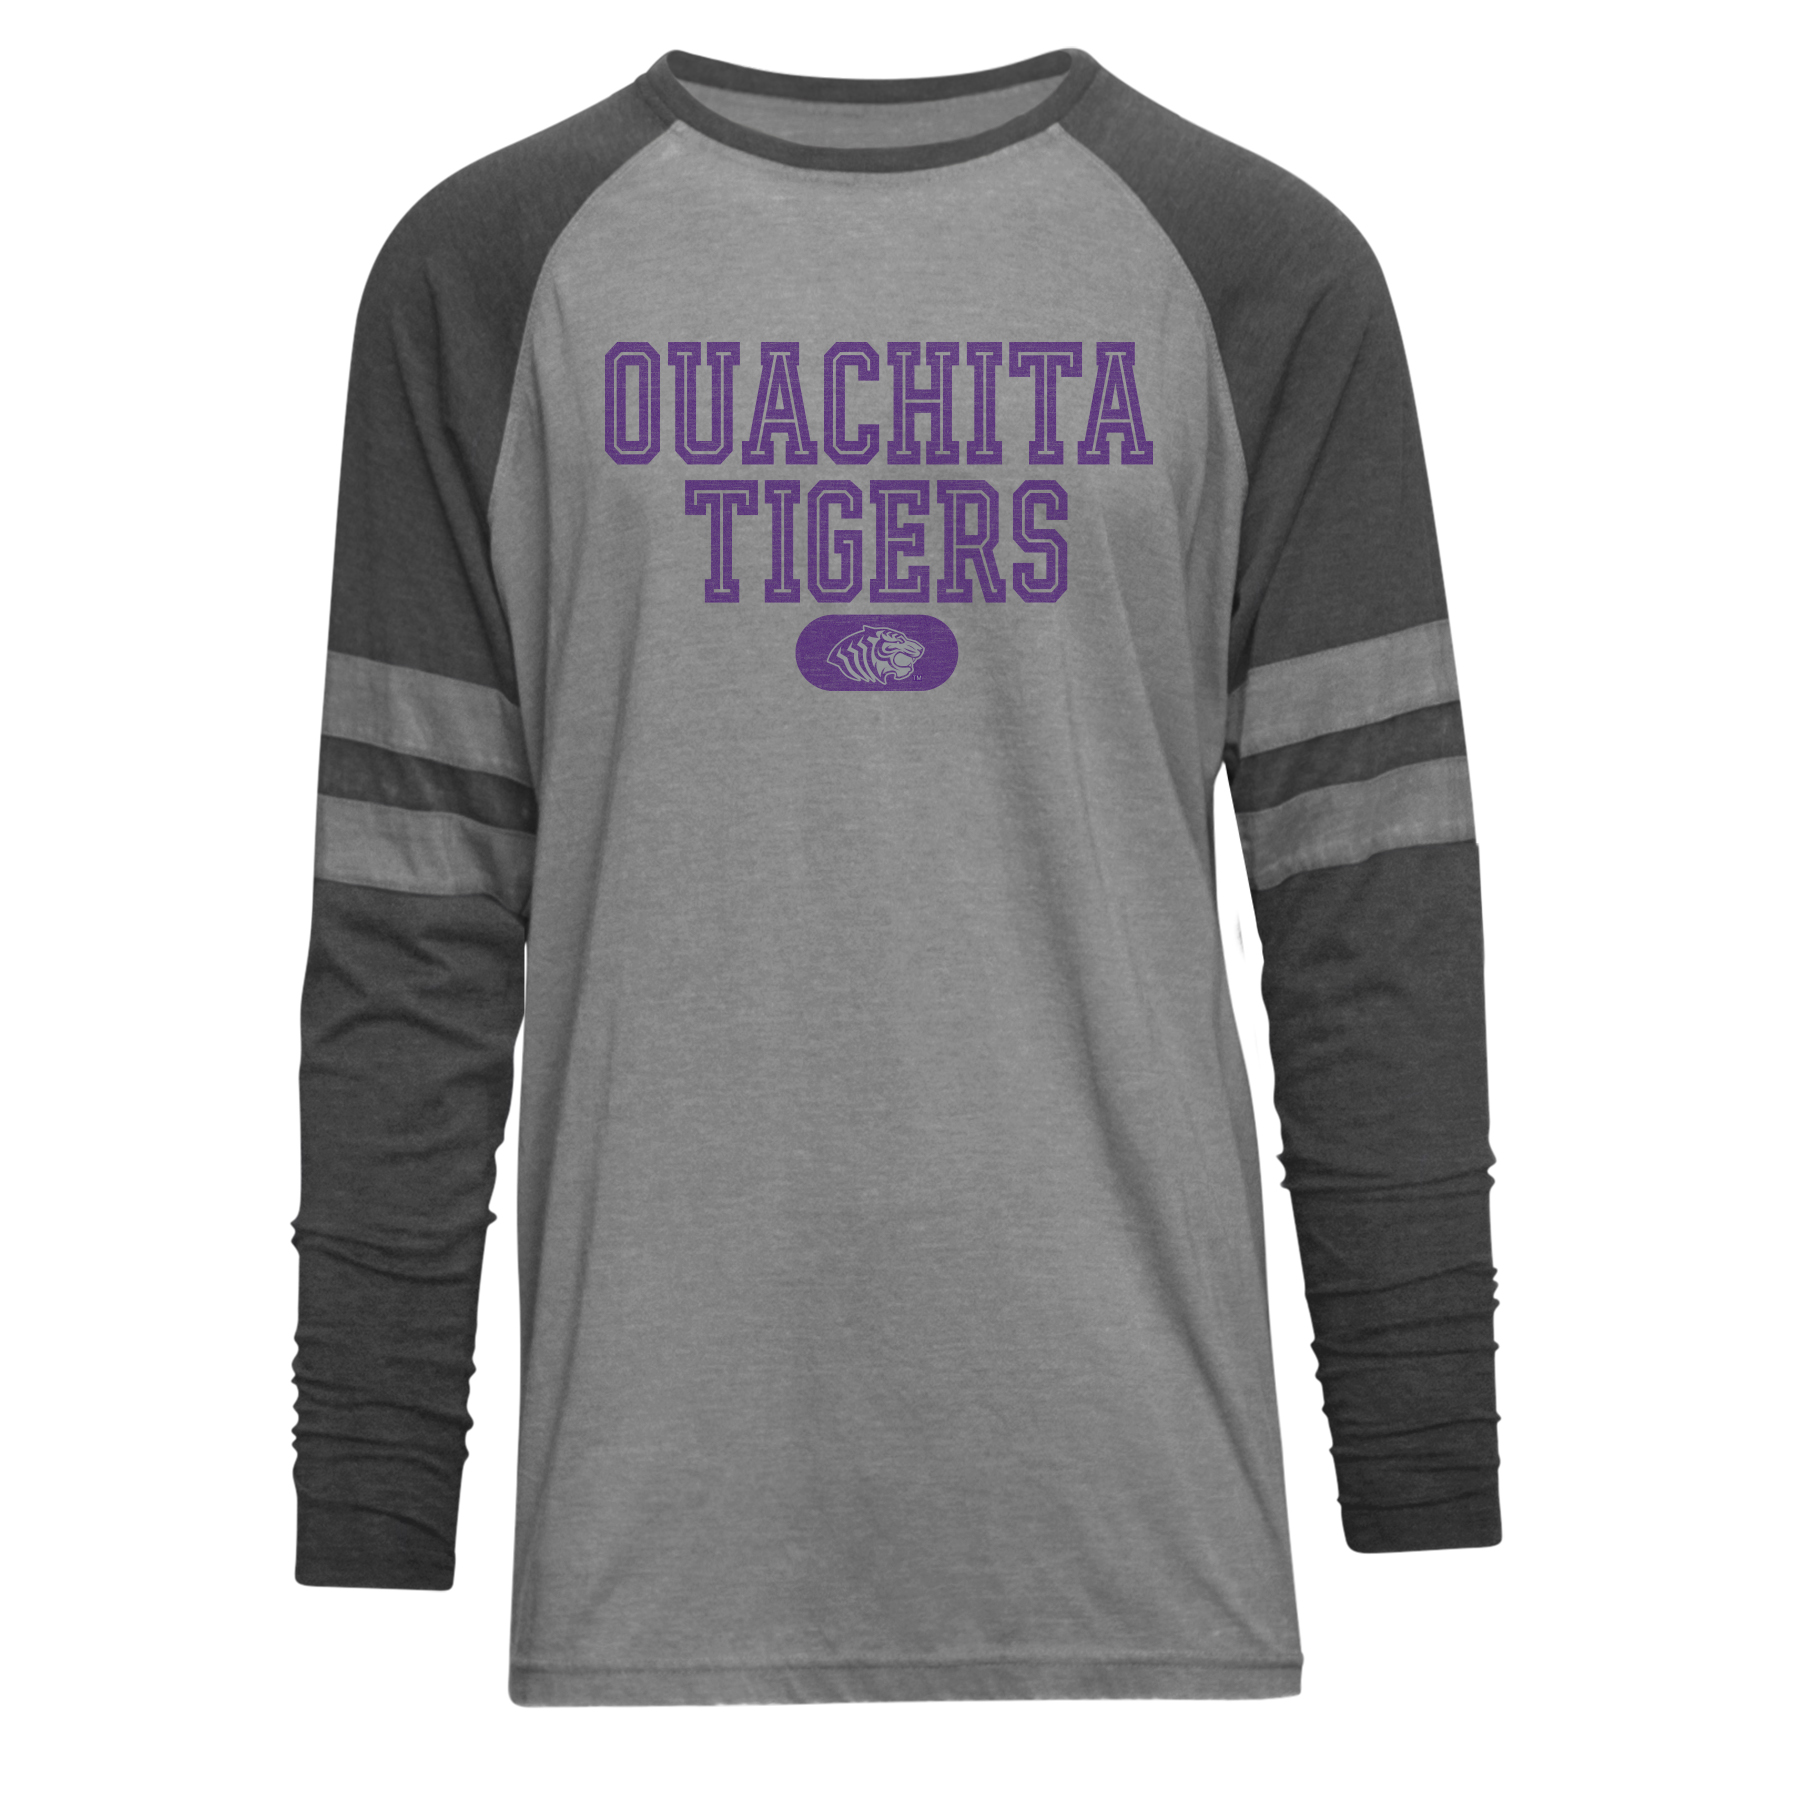 OUACHITA TIGERS PLAYER LS TEE